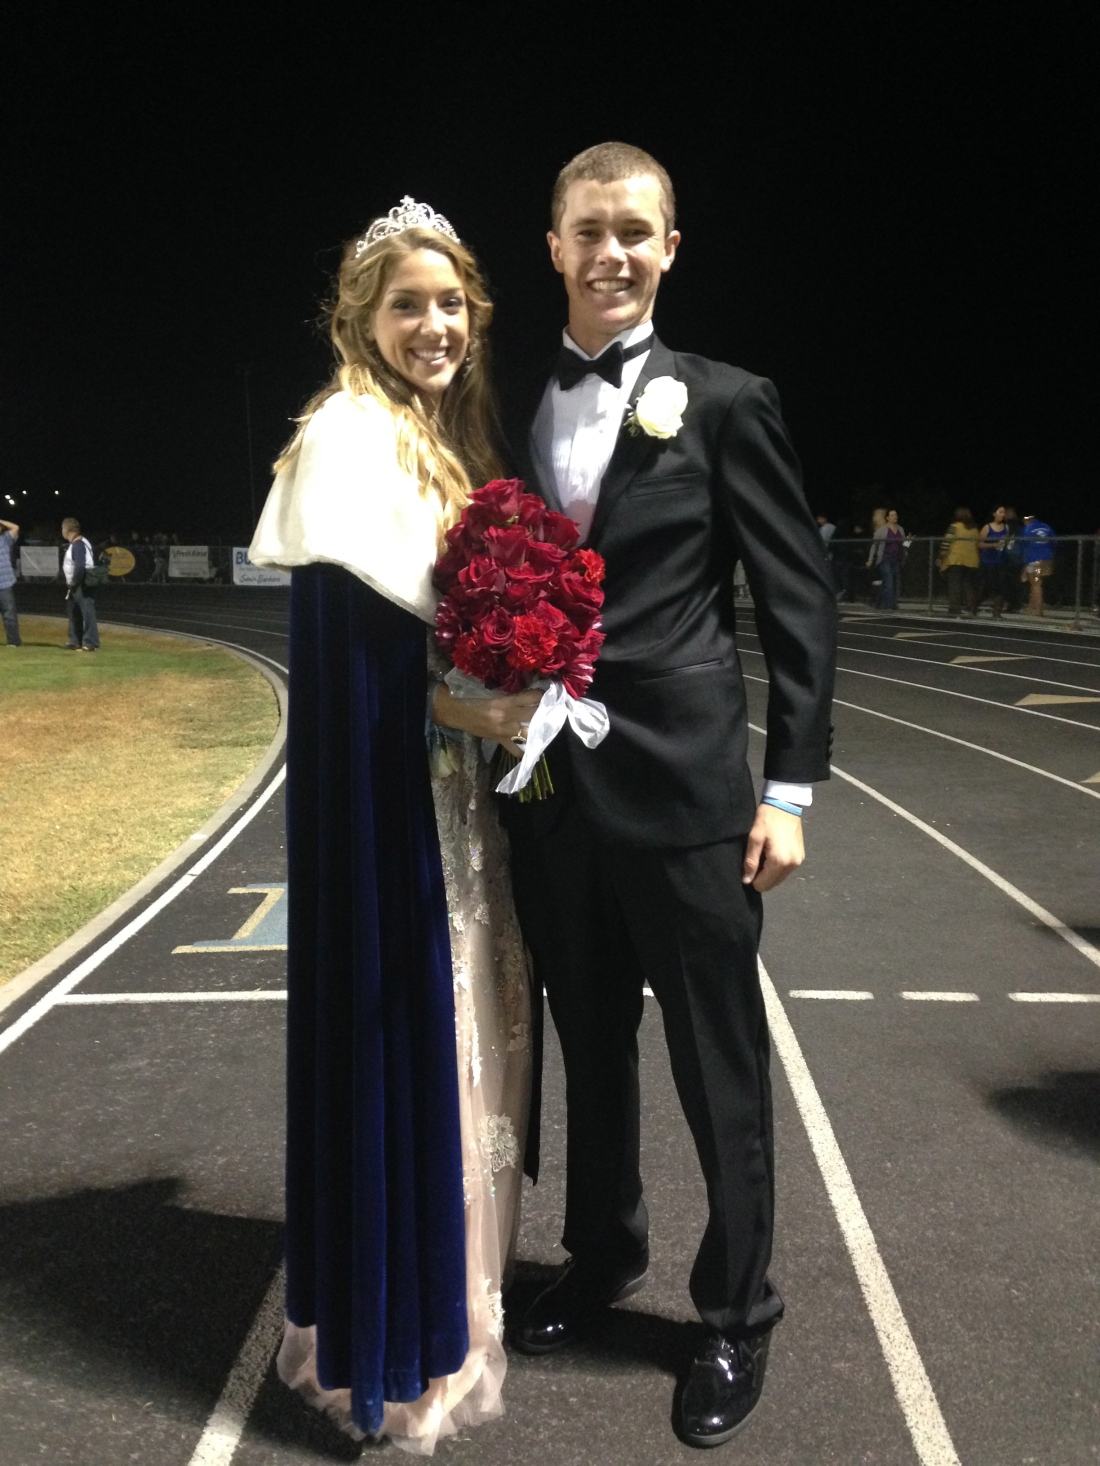 The princess with whom he was paired (and good friend Natalie) was crowned Homecoming Queen.  So fun!!